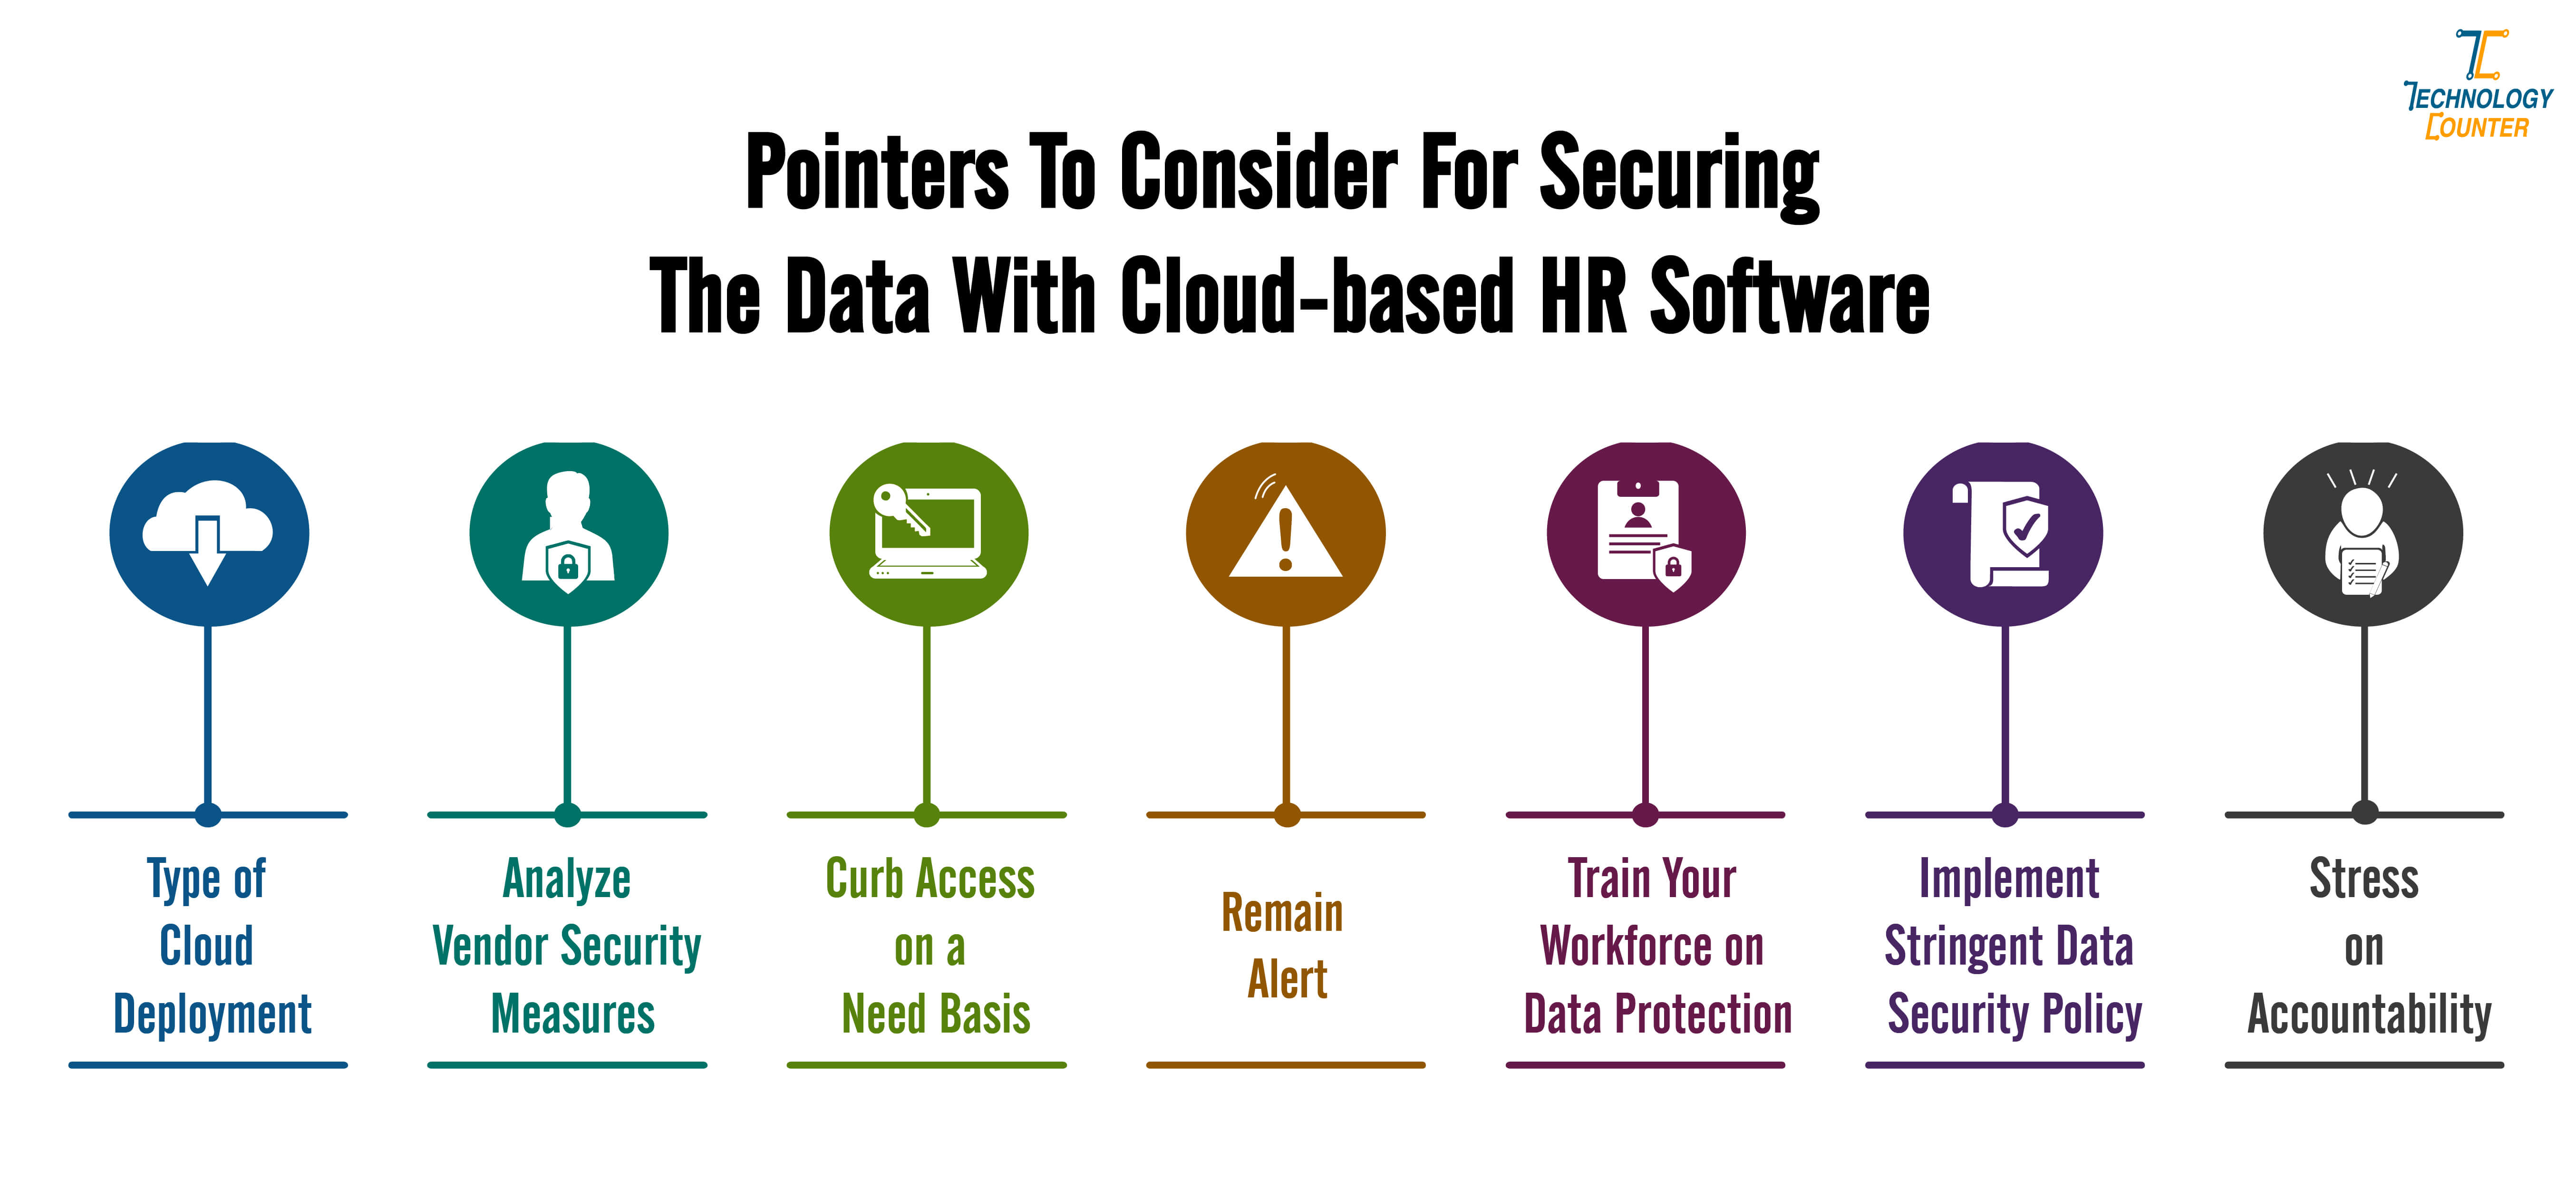 Pointers to Consider for Securing the Data With Cloud-based HR Software